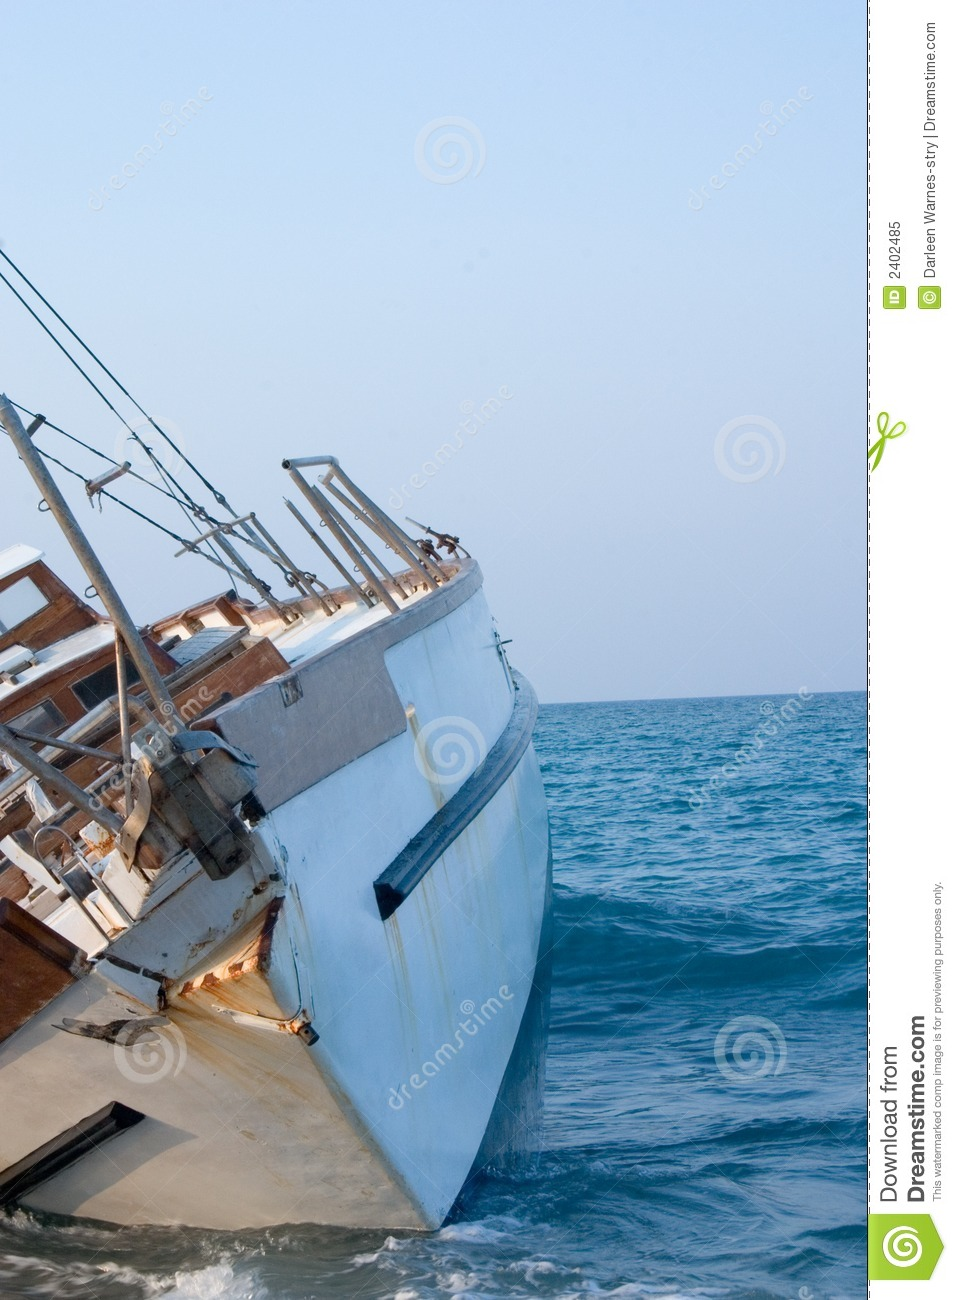 Sailboat Shipwreck stock image  Image of boating, gone - 2402485